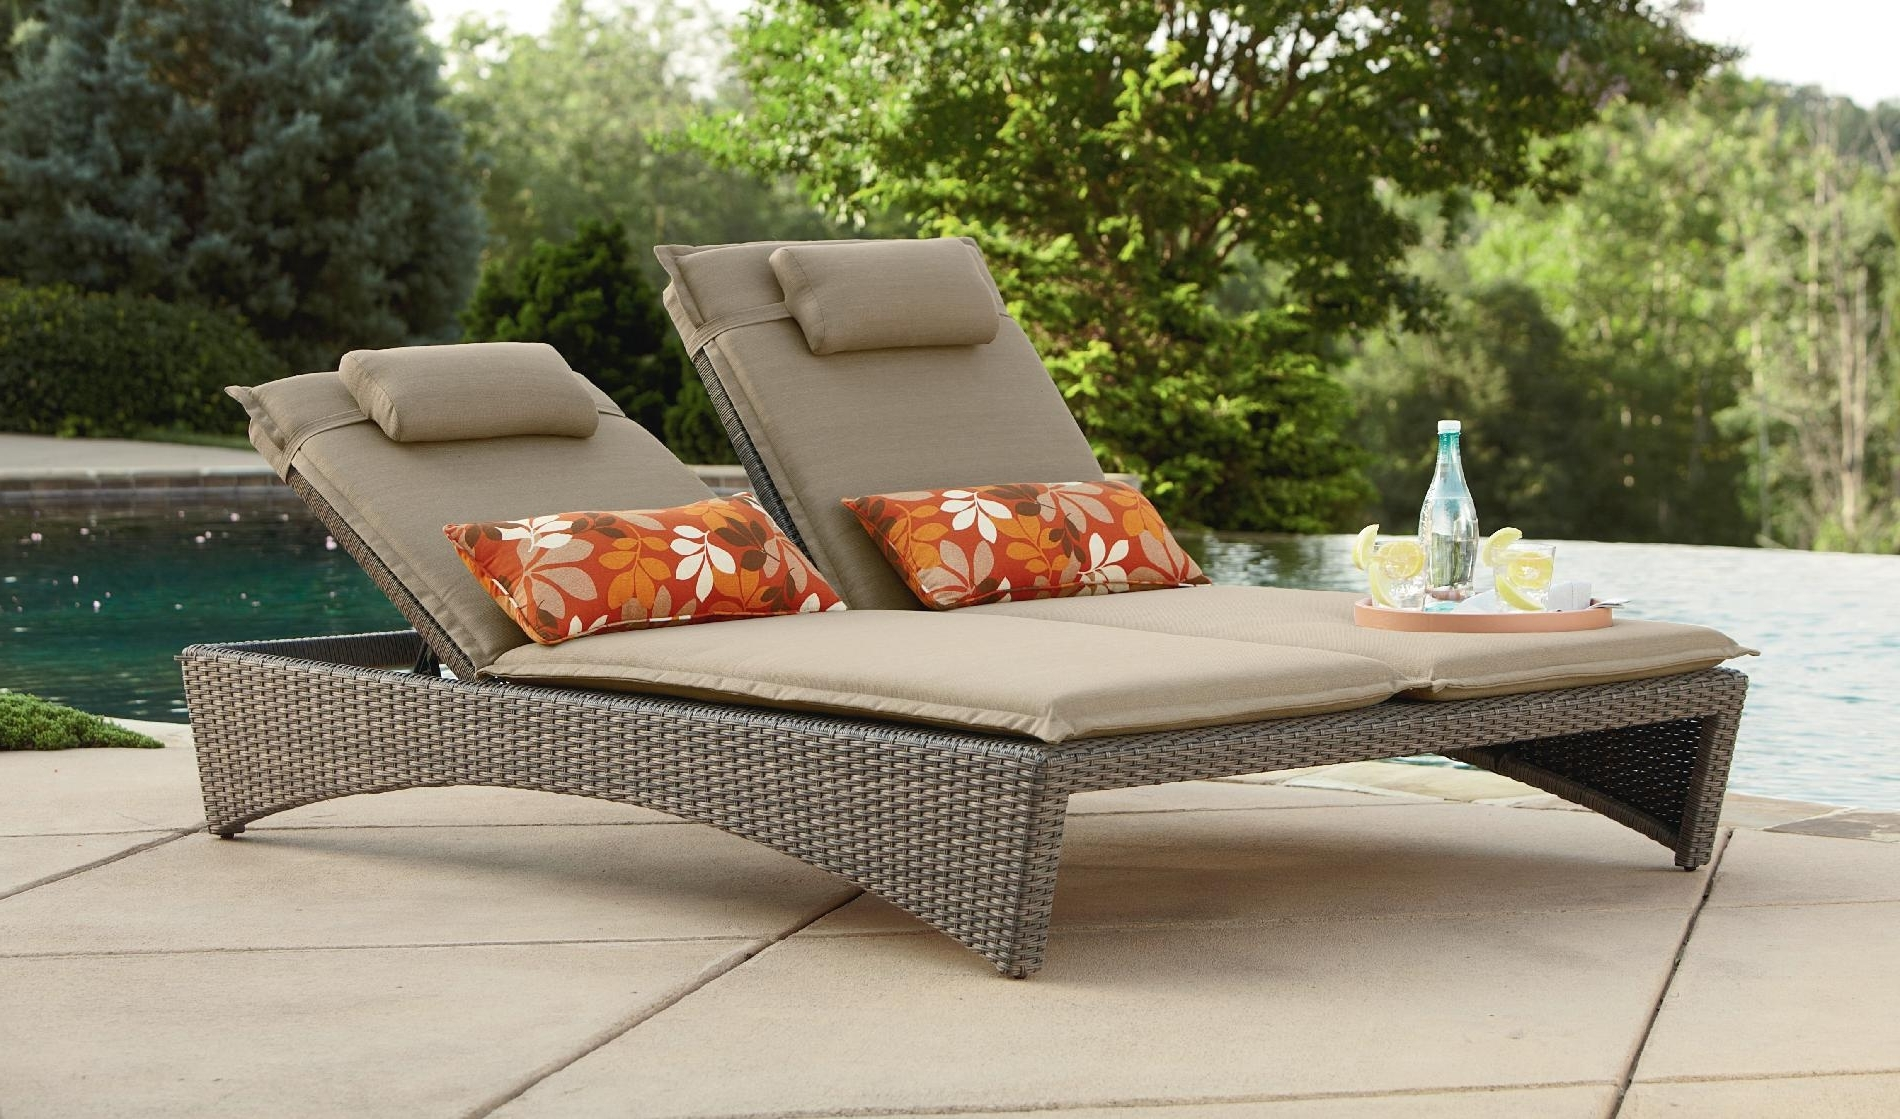 Best And Newest Popular Of Double Chaise Lounge Outdoor With Kidkraft Outdoor Intended For Outdoor Chaise Lounge Chairs With Canopy (View 2 of 15)